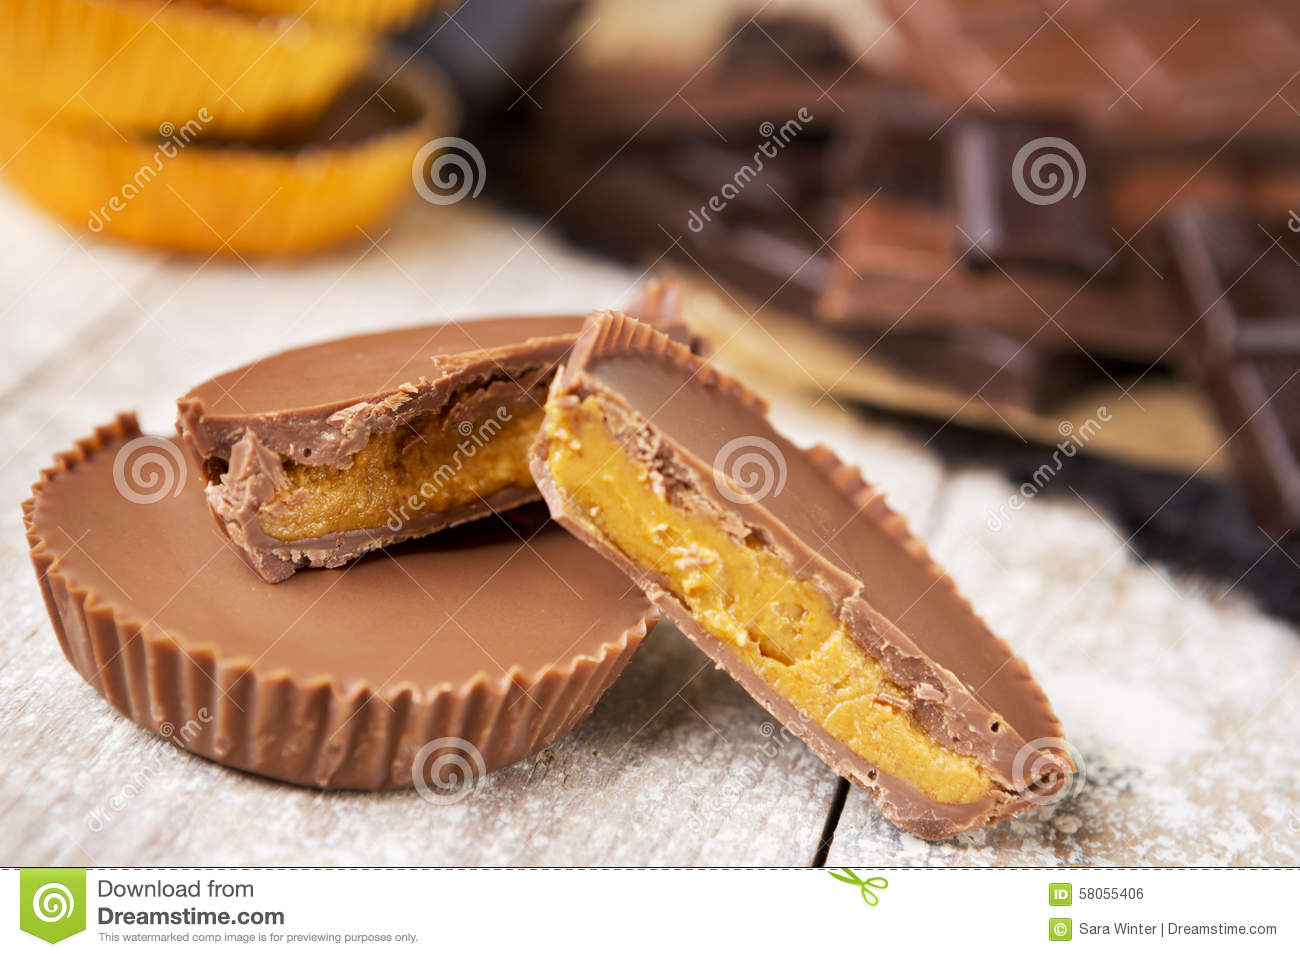 Homemade peanut butter cups on a rustic table